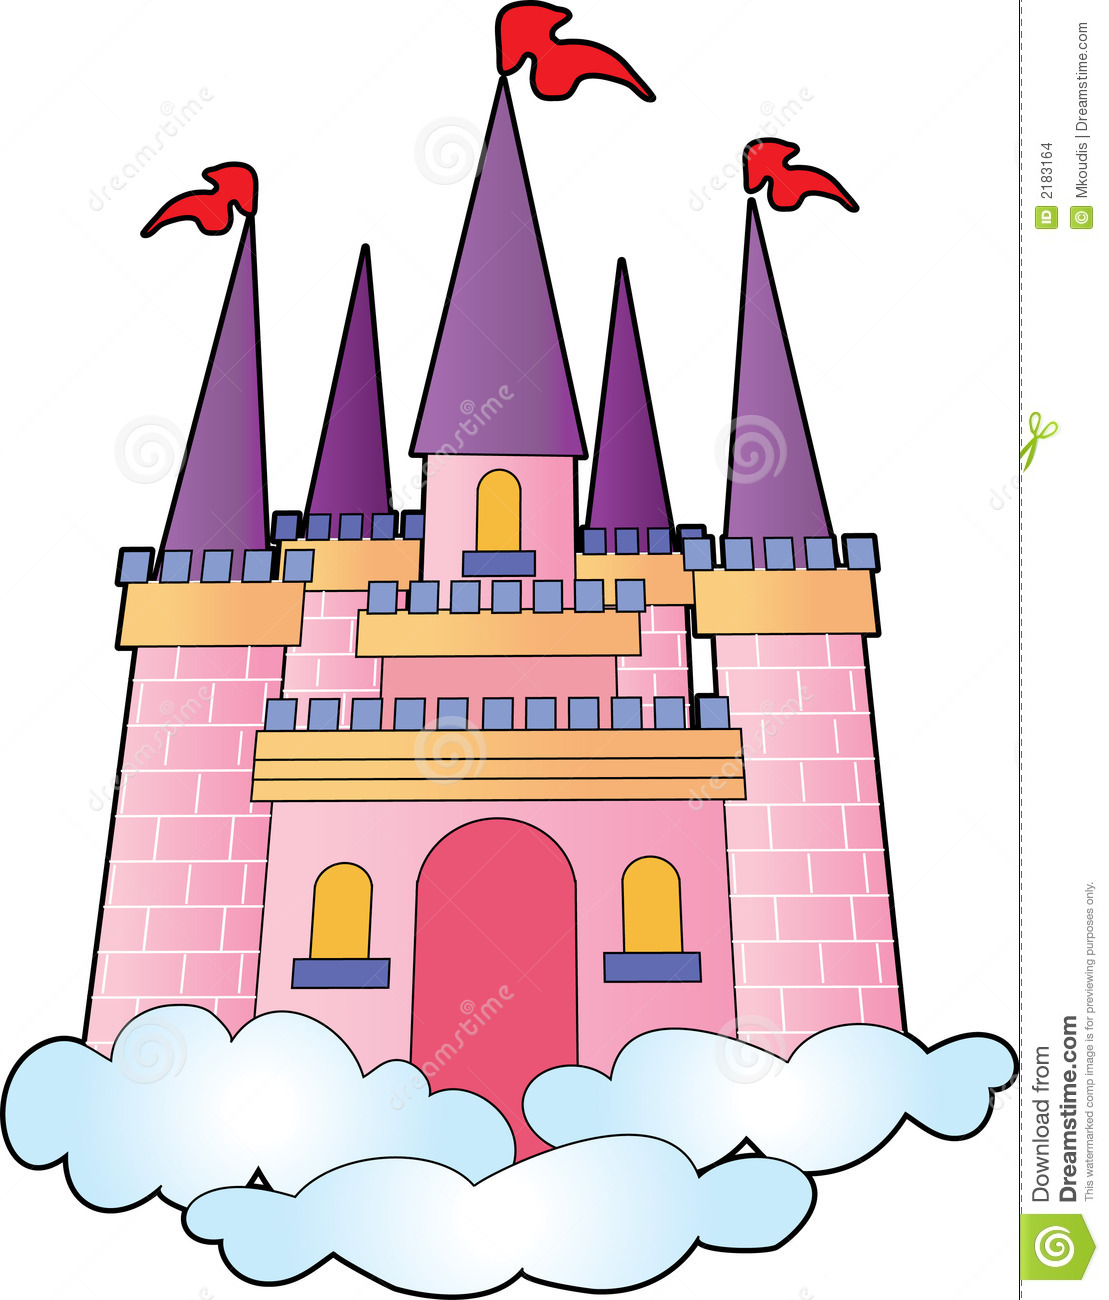 disney castle clipart clipart suggest princess castle clip art princess castle clipart